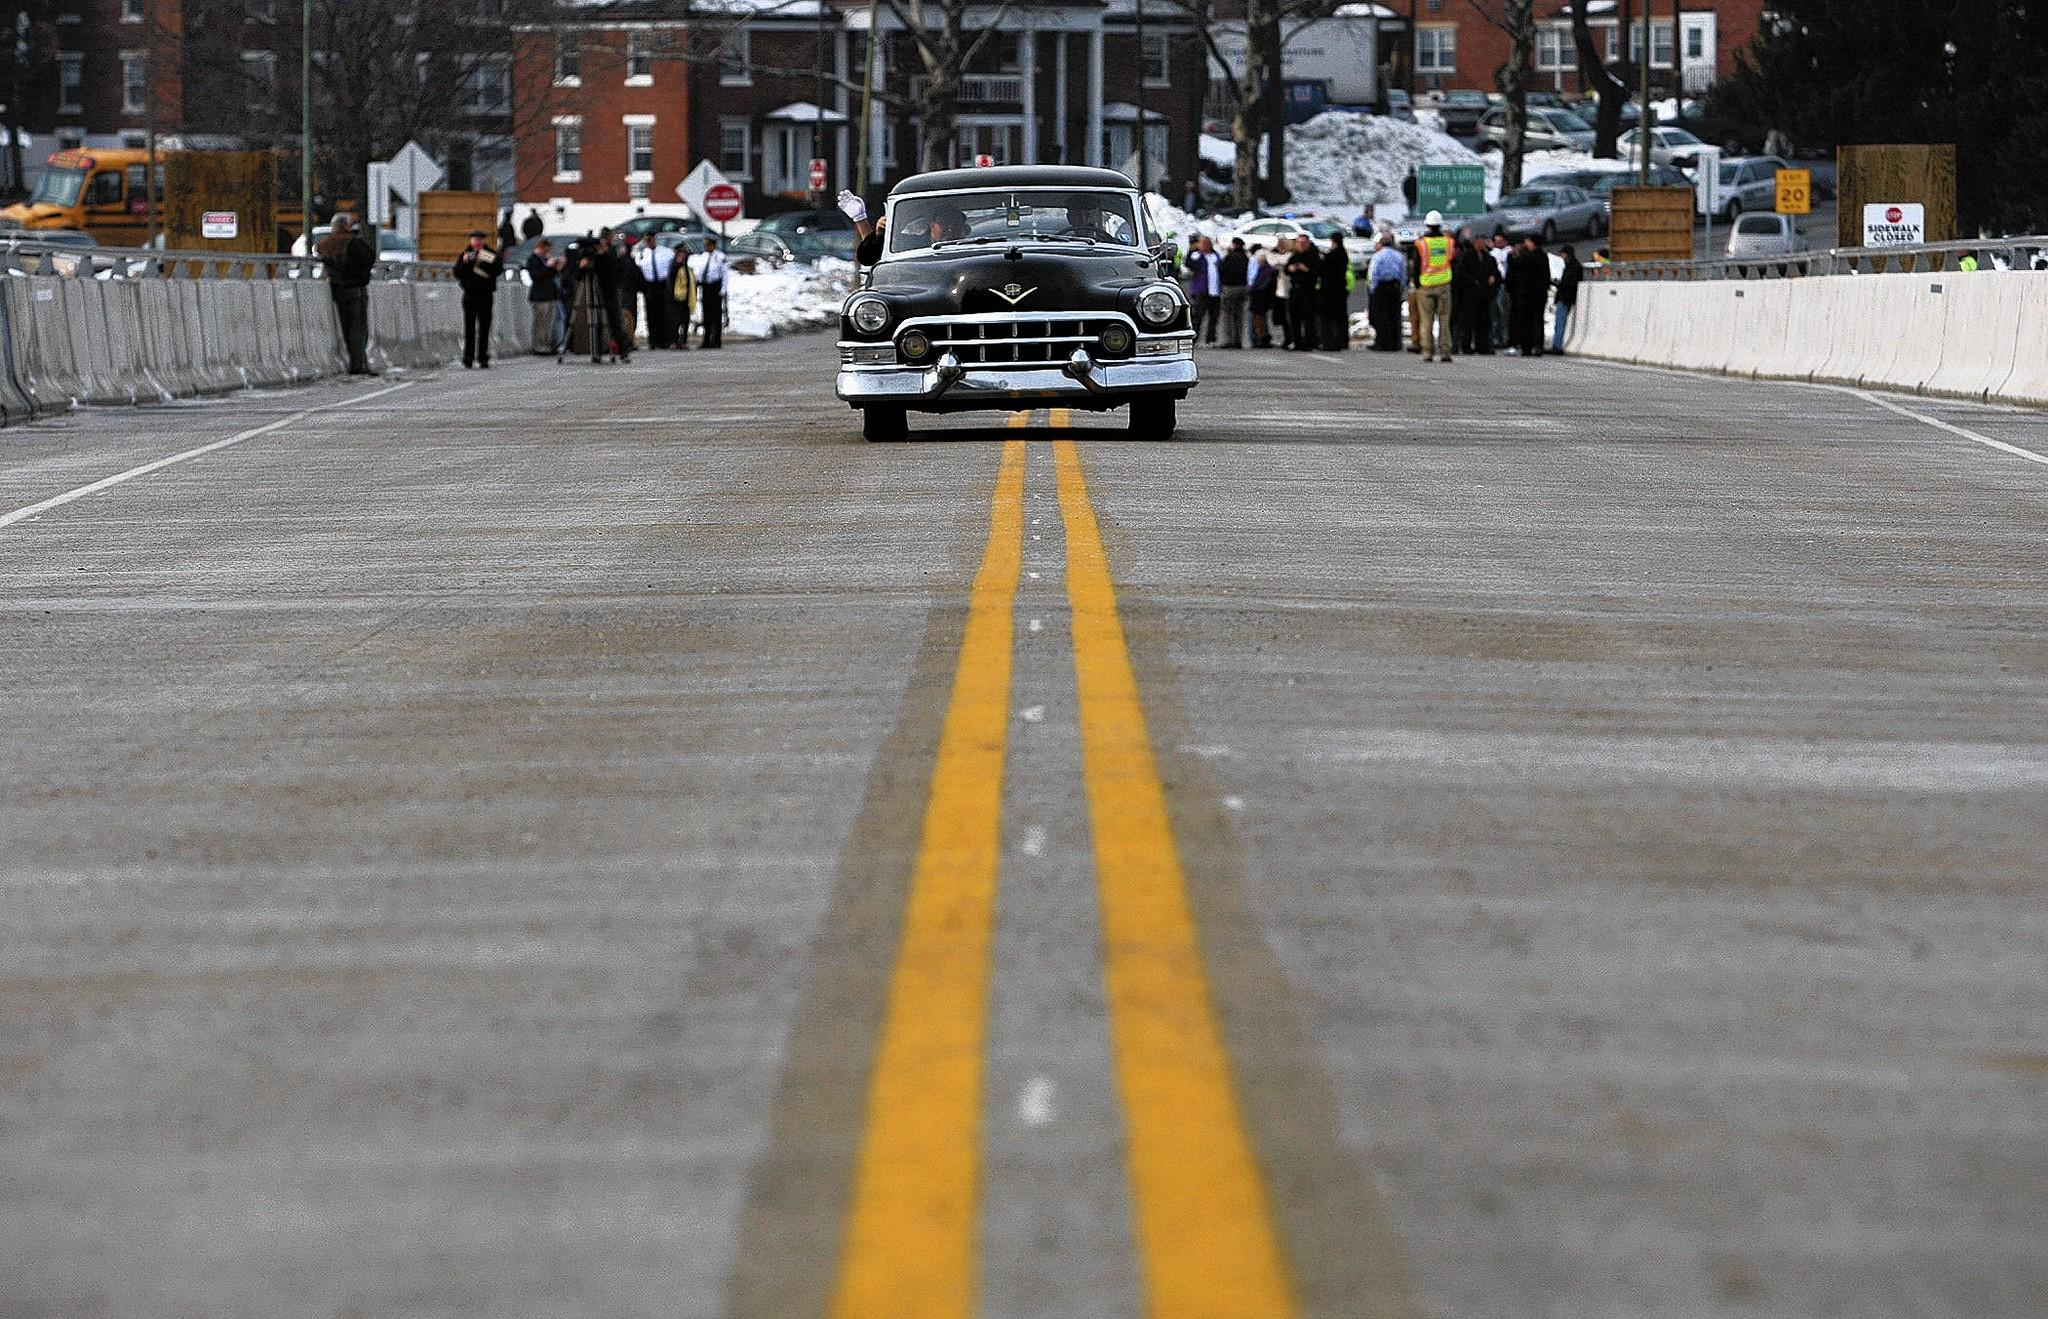 A 1952 Cadillac highlights the ceremonial opening of a new 15th Street Bridge in Allentown a week ago. Initially, the car was misidentified as a 1948 Packard.